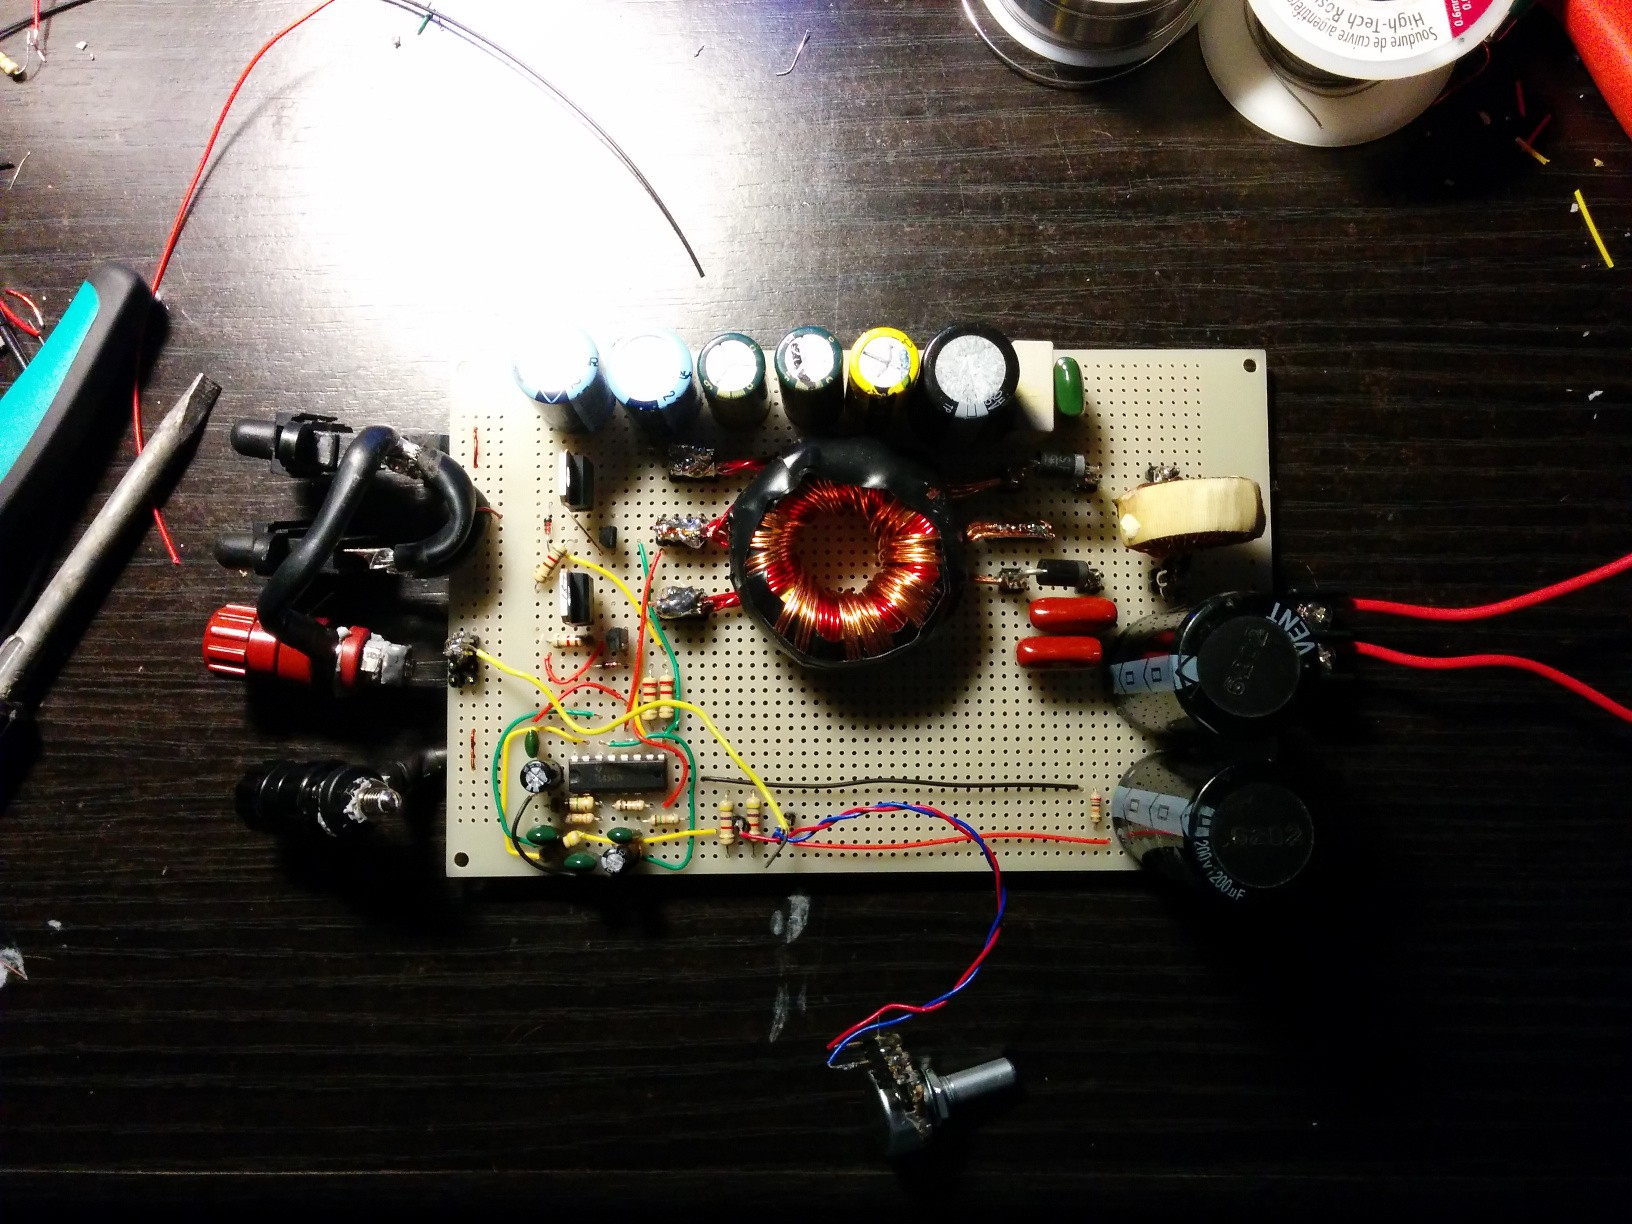 Class D Subwoofer Amplifier Out Of Scrap Power Supply To A Car For Subwoofers In Your Home This Was My First Try At Push Pull Converter Type And Let Me Just Say There Were Many Failures Before Worked The Biggest Issue I Had